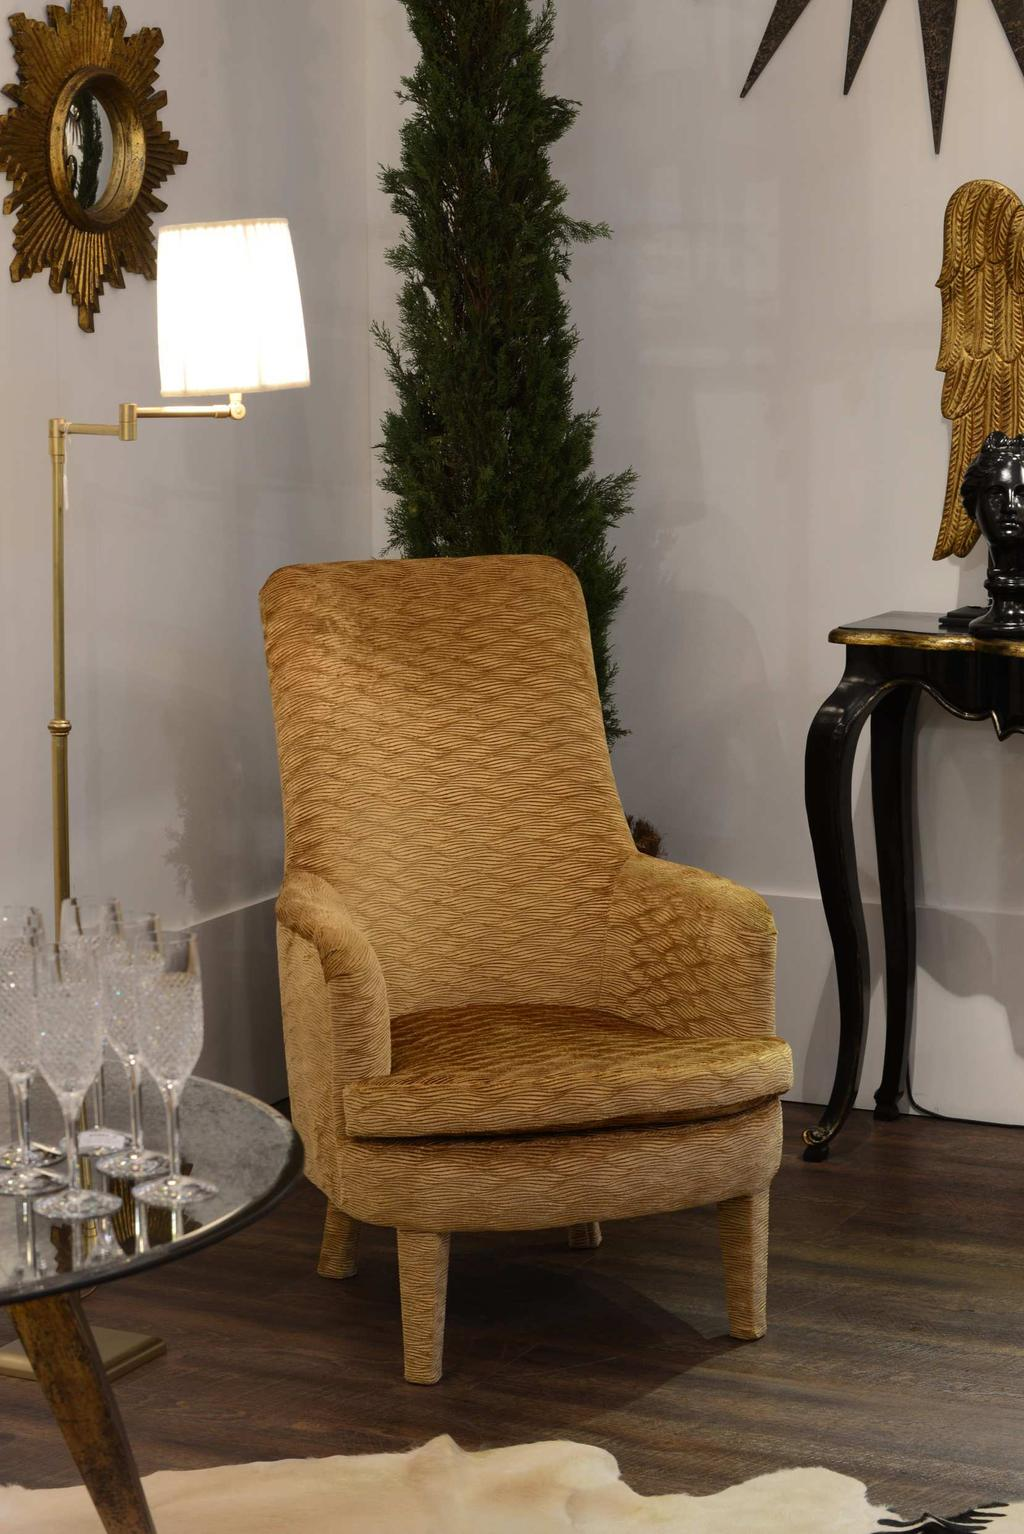 F6245 Scarlet Chair with Gold Velvet fabric C1431-13 Clarice Arm Chair Lamp Tumbled Brass (h127 cm)